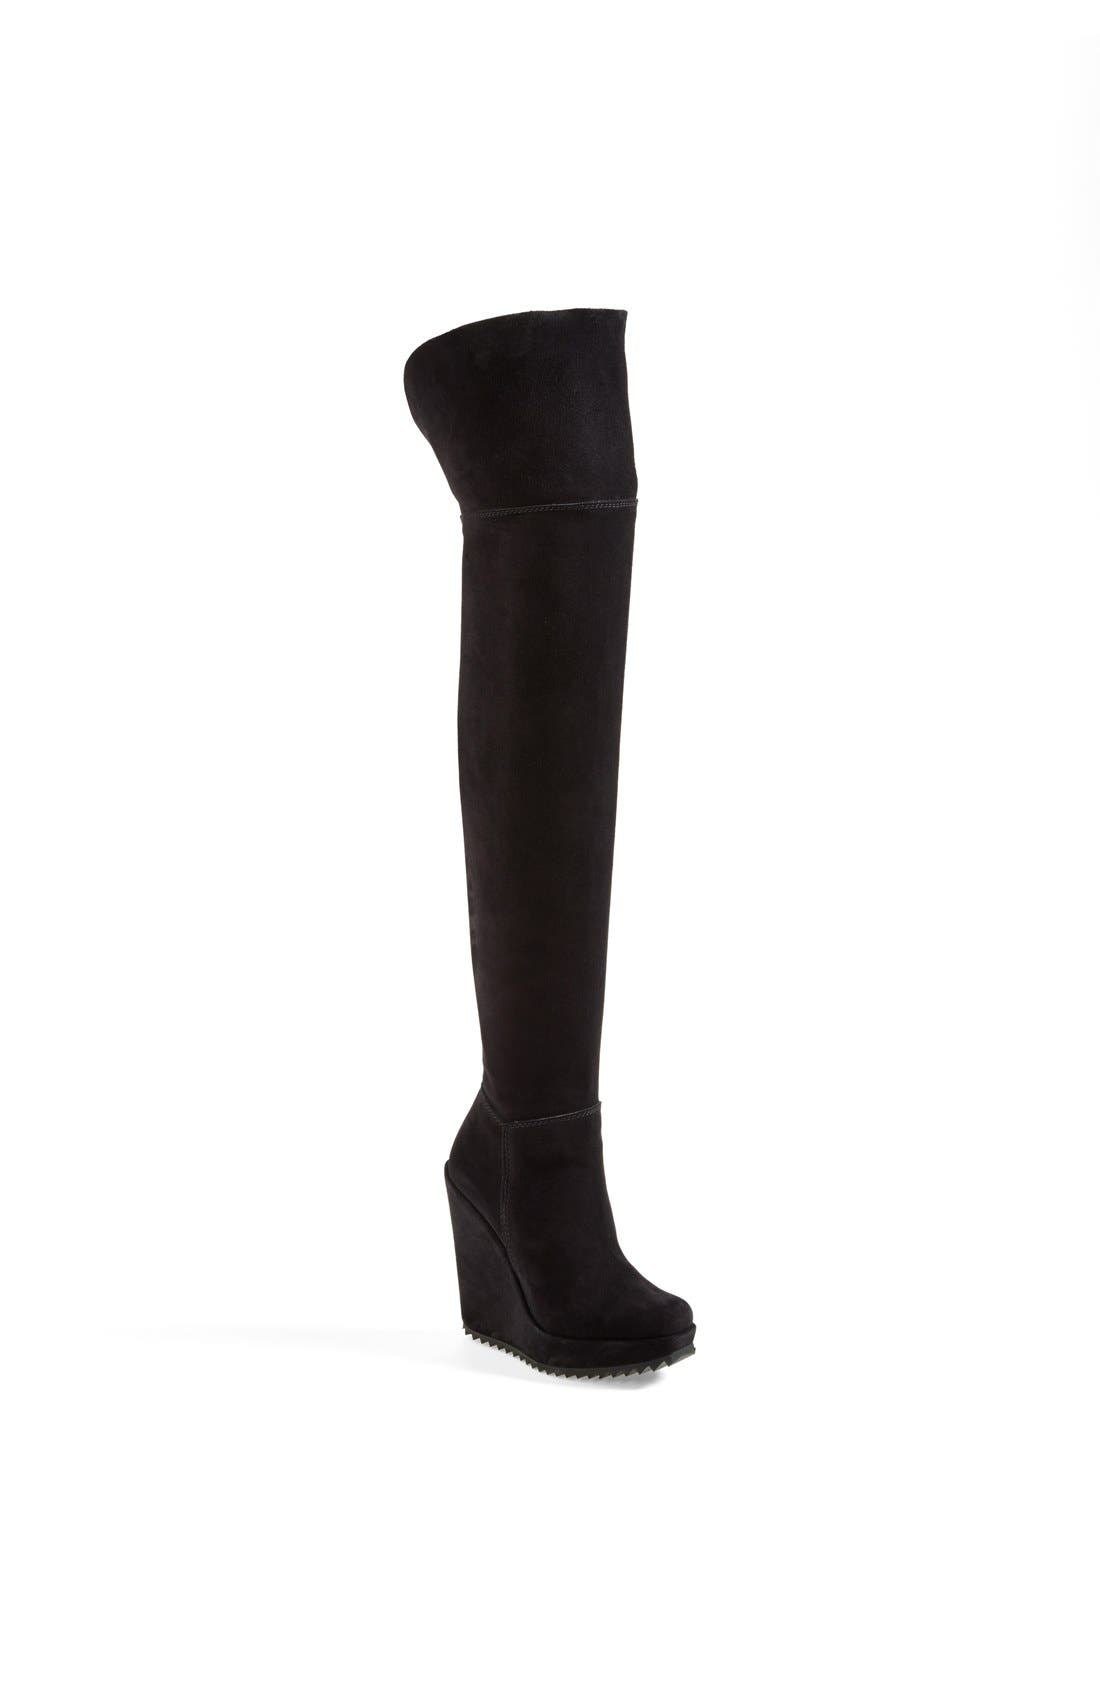 'Vanne' Over-the-Knee Boot,                             Main thumbnail 1, color,                             Black